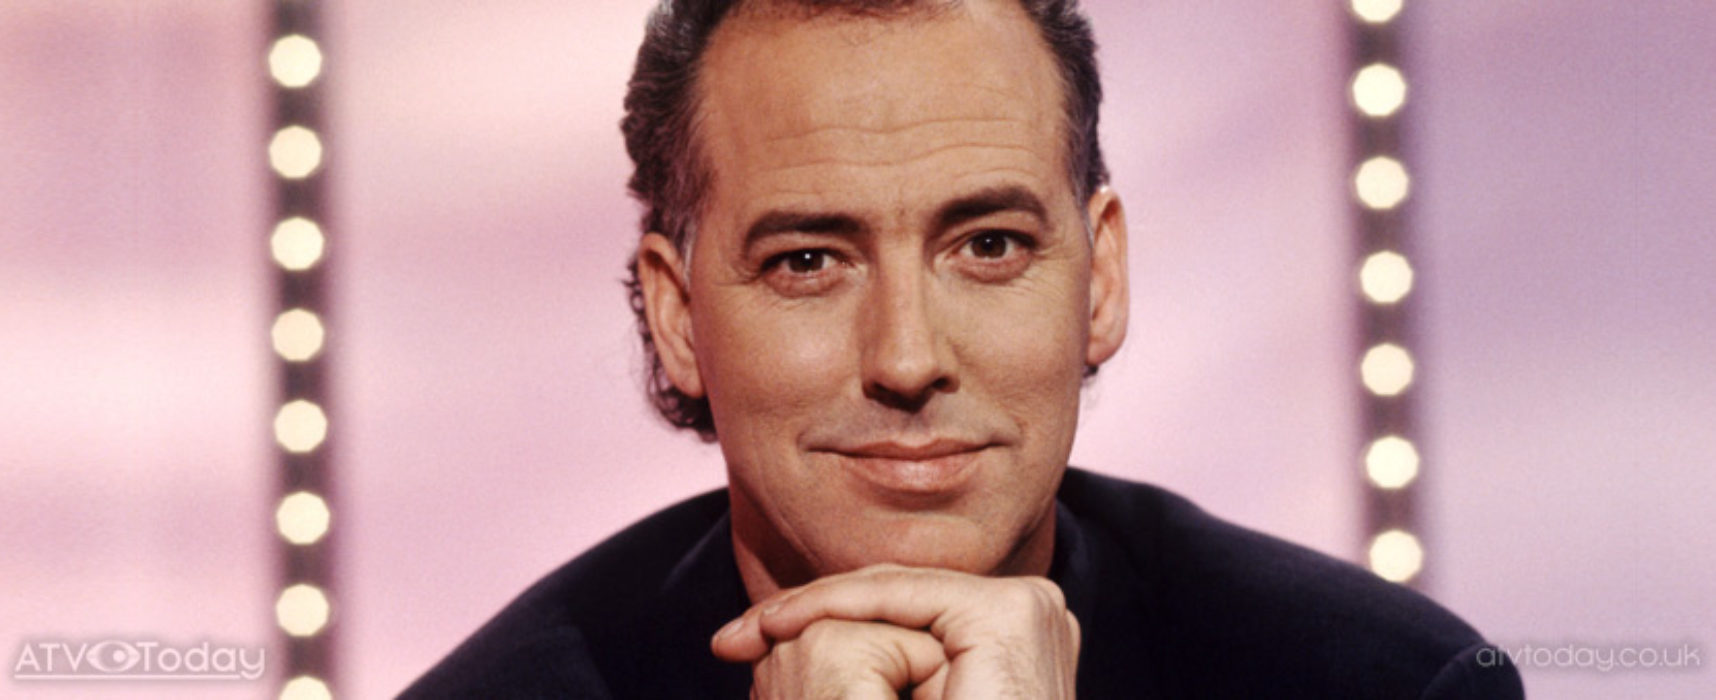 Michael Barrymore and Maura Higgins for Dancing on Ice 2020